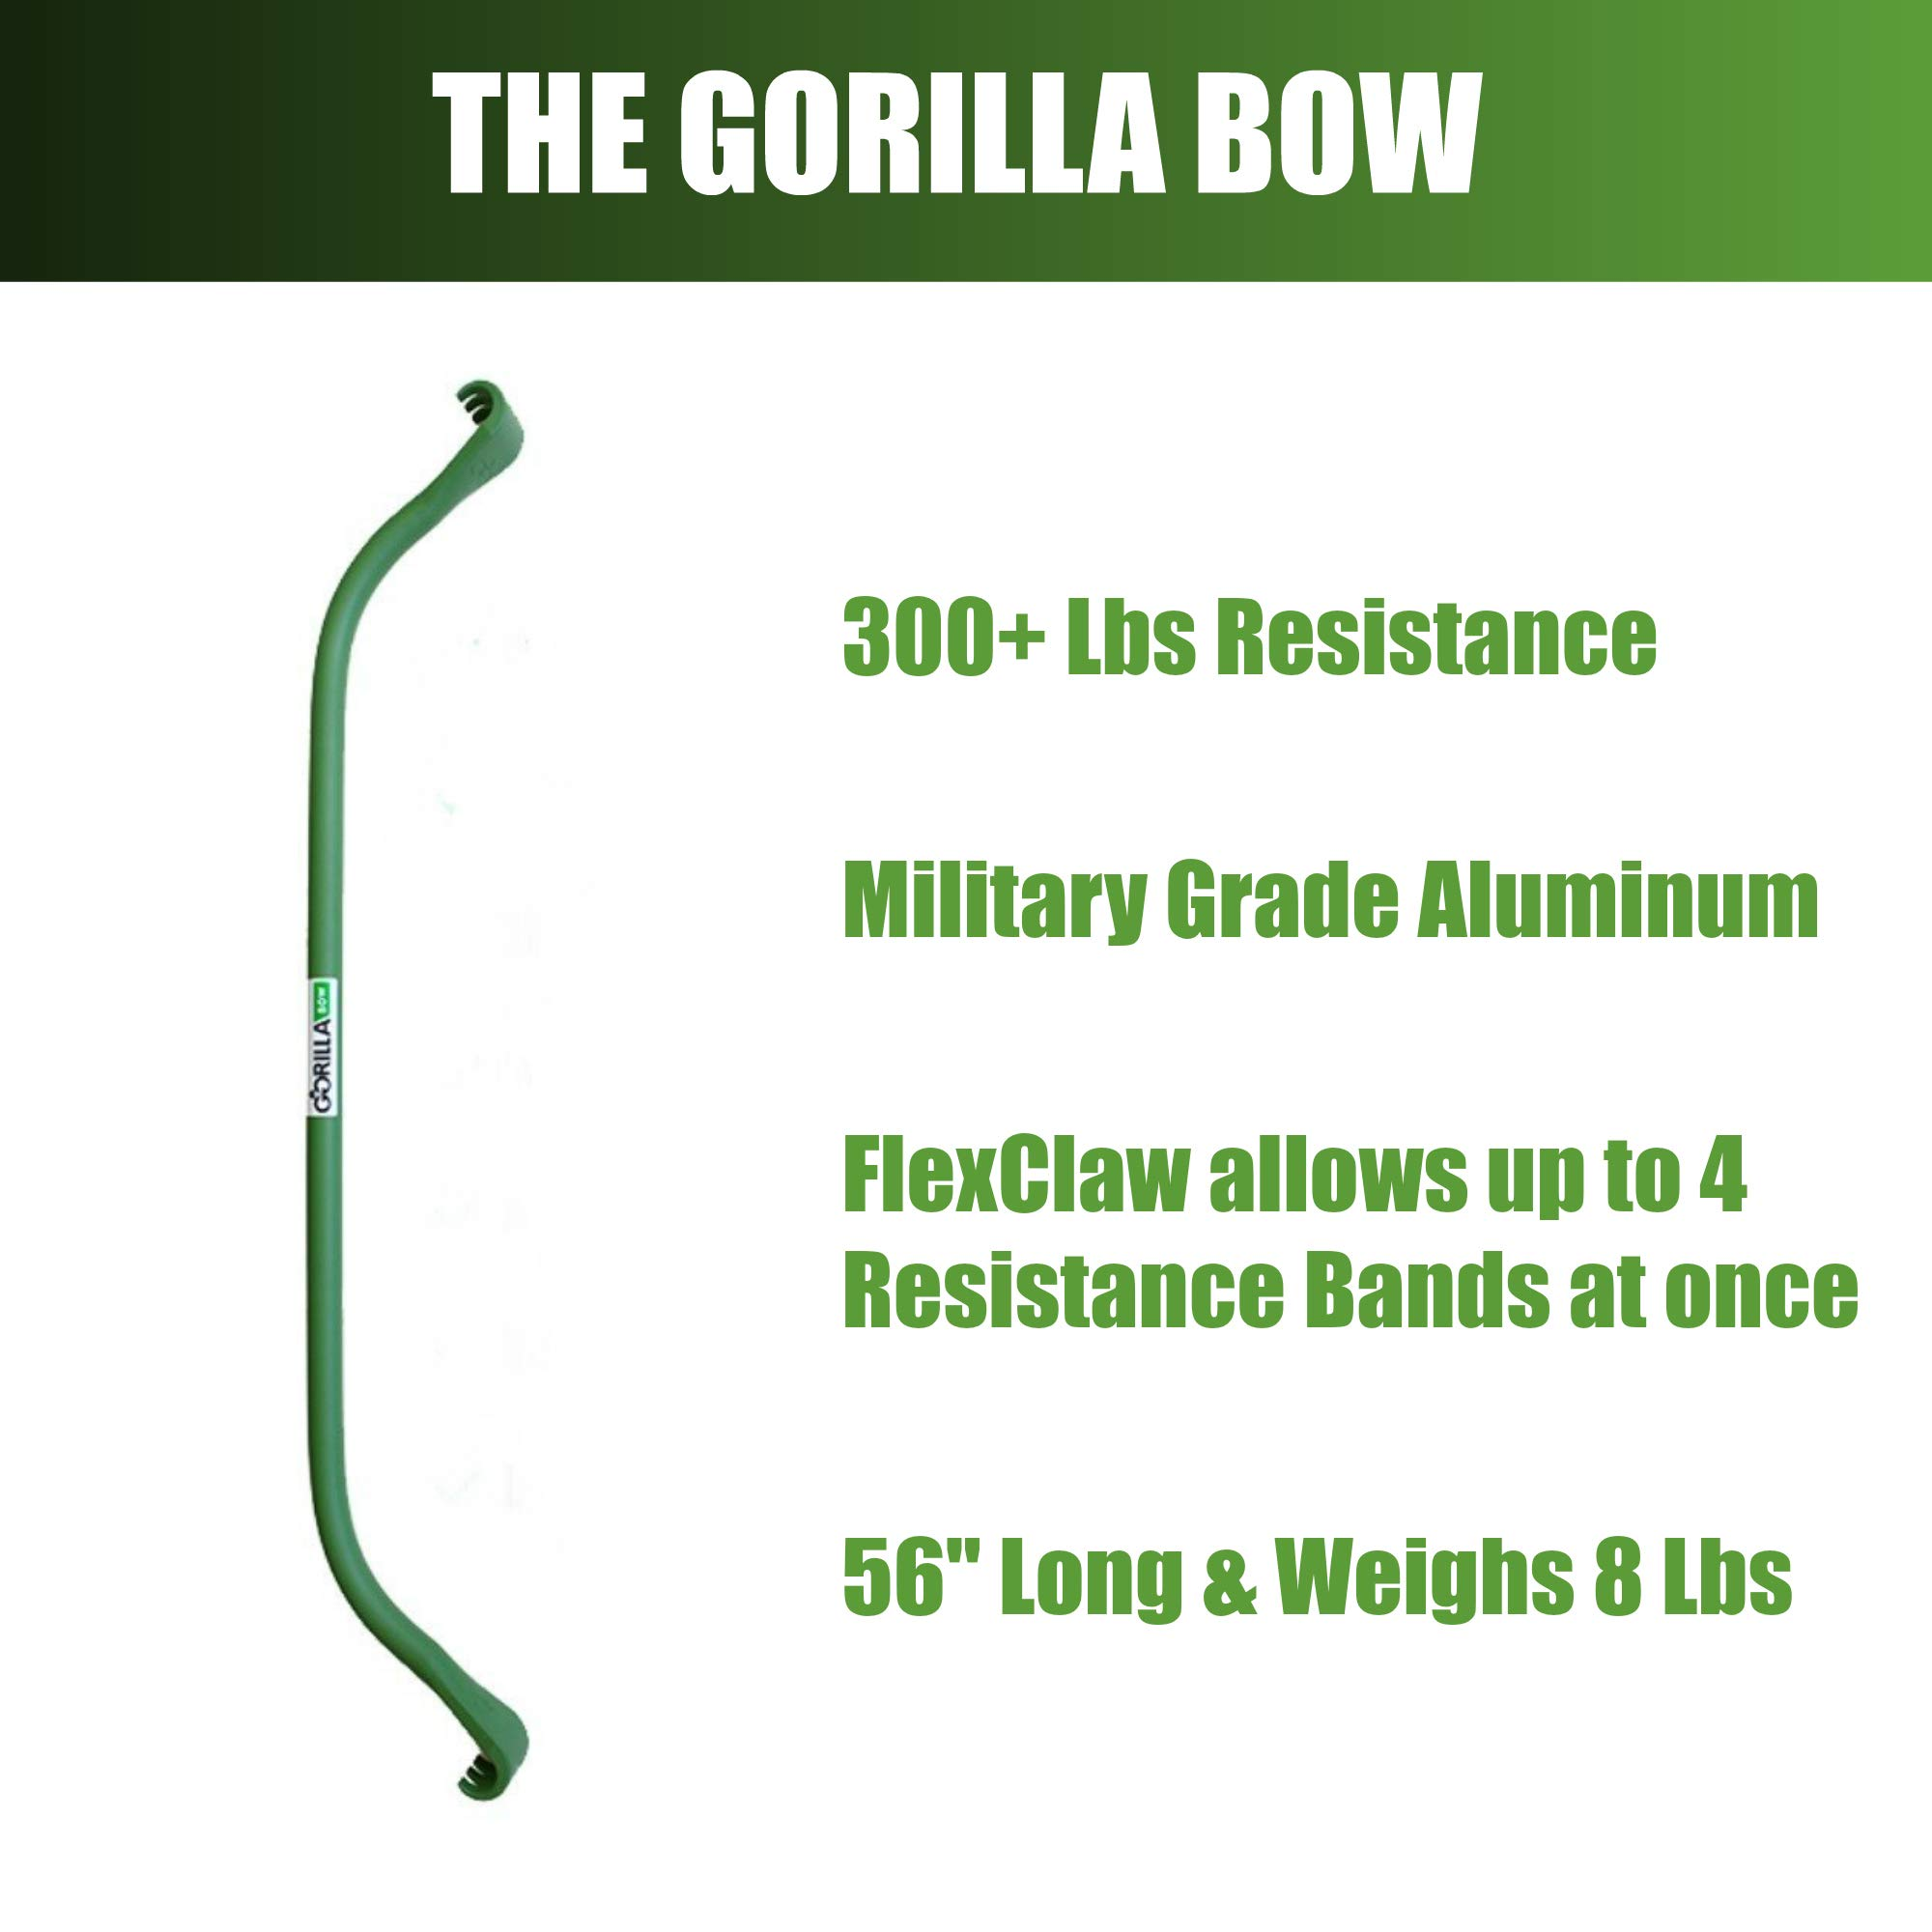 Gorilla Bow Portable Home Gym Resistance Band System | Weightlifting & HIIT Interval Training Kit | Full Body Workout Equipment (Heavy Green) by Gorilla Fitness (Image #4)